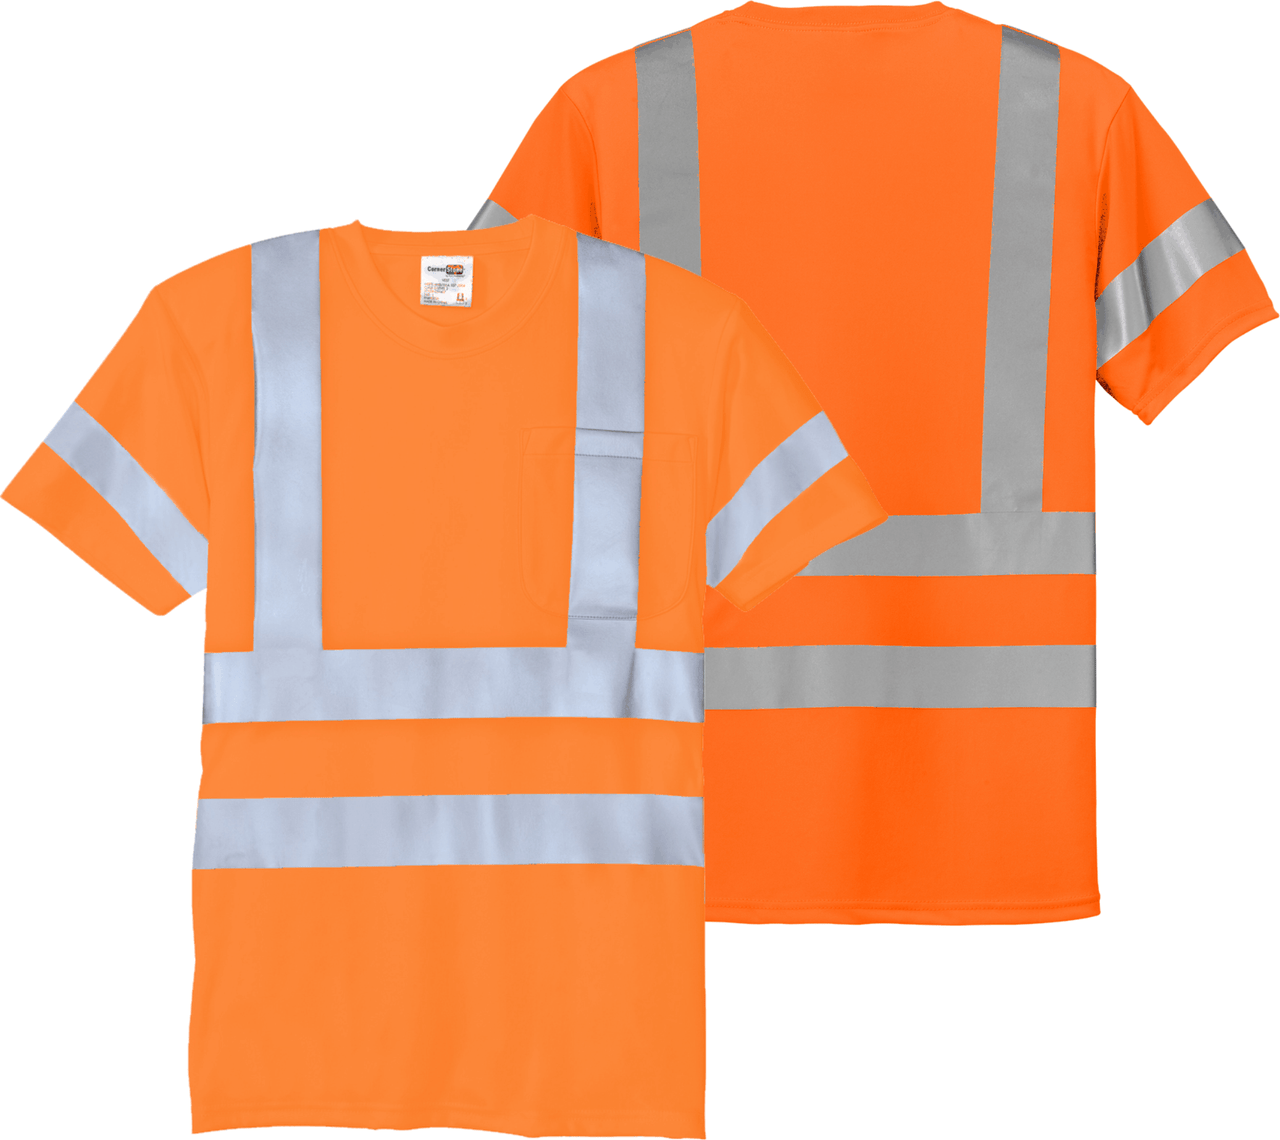 Safety Yellow Class 3 T-Shirt with Pocket ANSI/SEA 107 Class 3 Certified